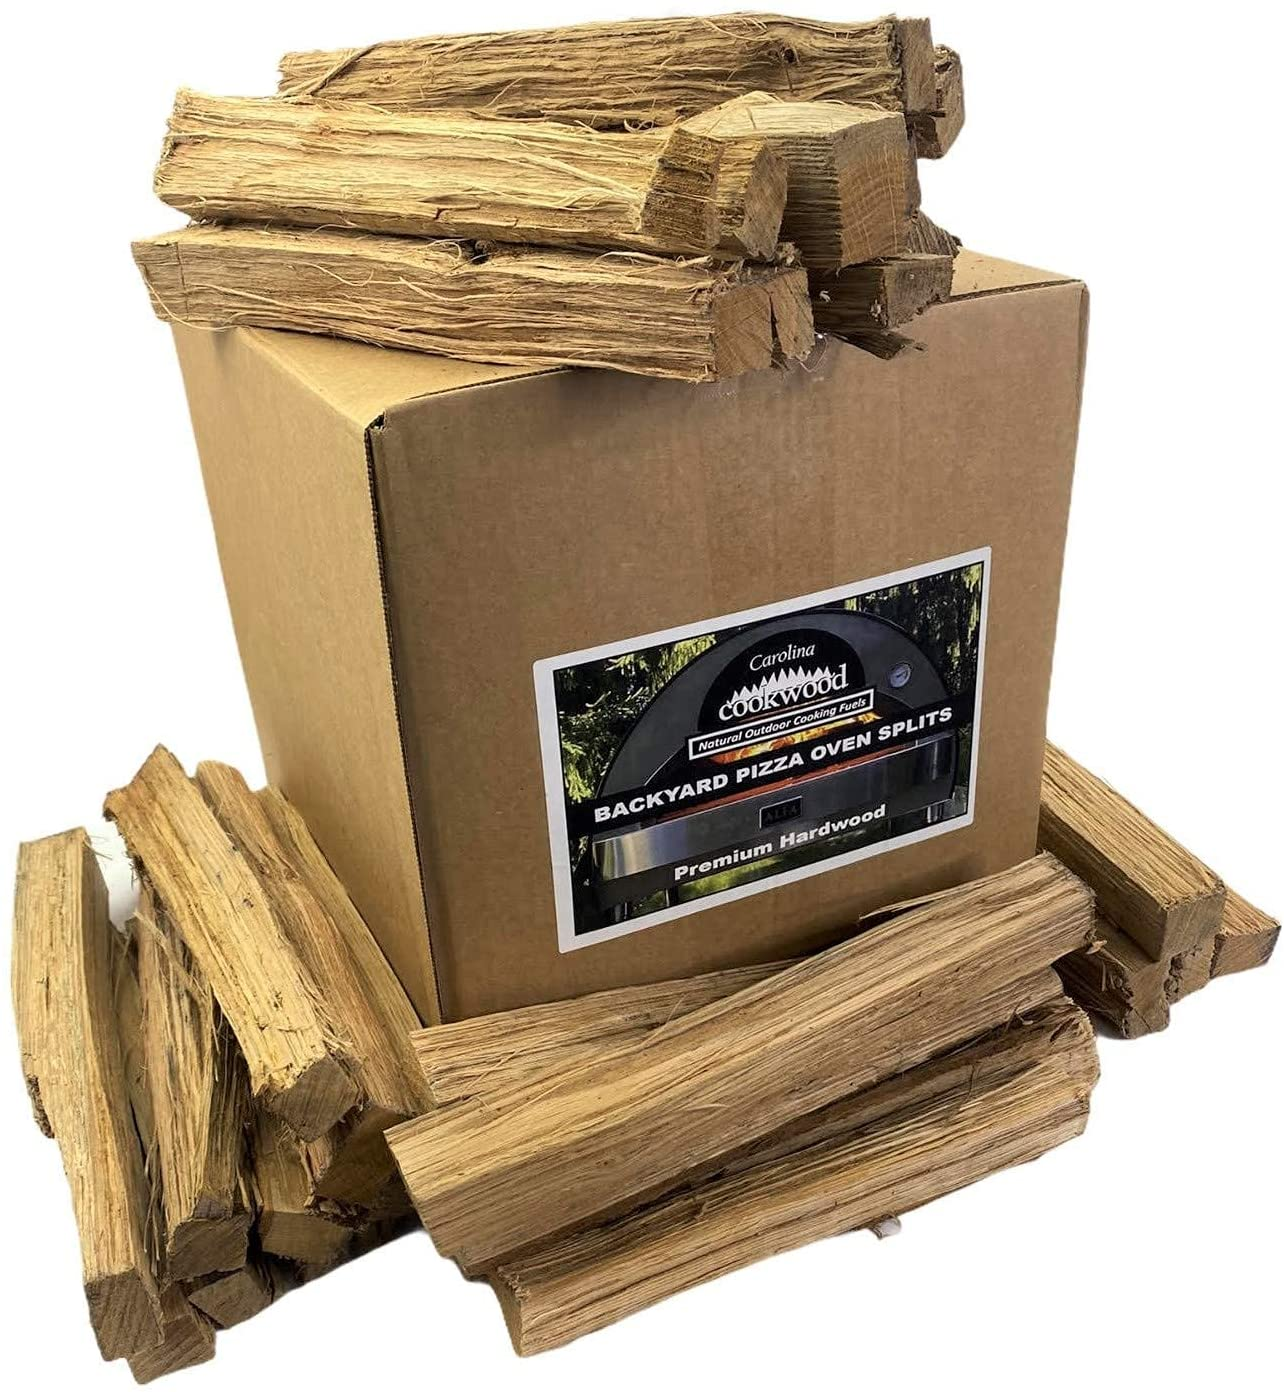 Carolina Cookwood Backyard Pizza Oven Splits Naturally Cured Premium White Oak Hardwood for Wood Fired Outdoor Cooking, Grilling, & Baking, 18-24 lb. Box with 12 in. Lengths